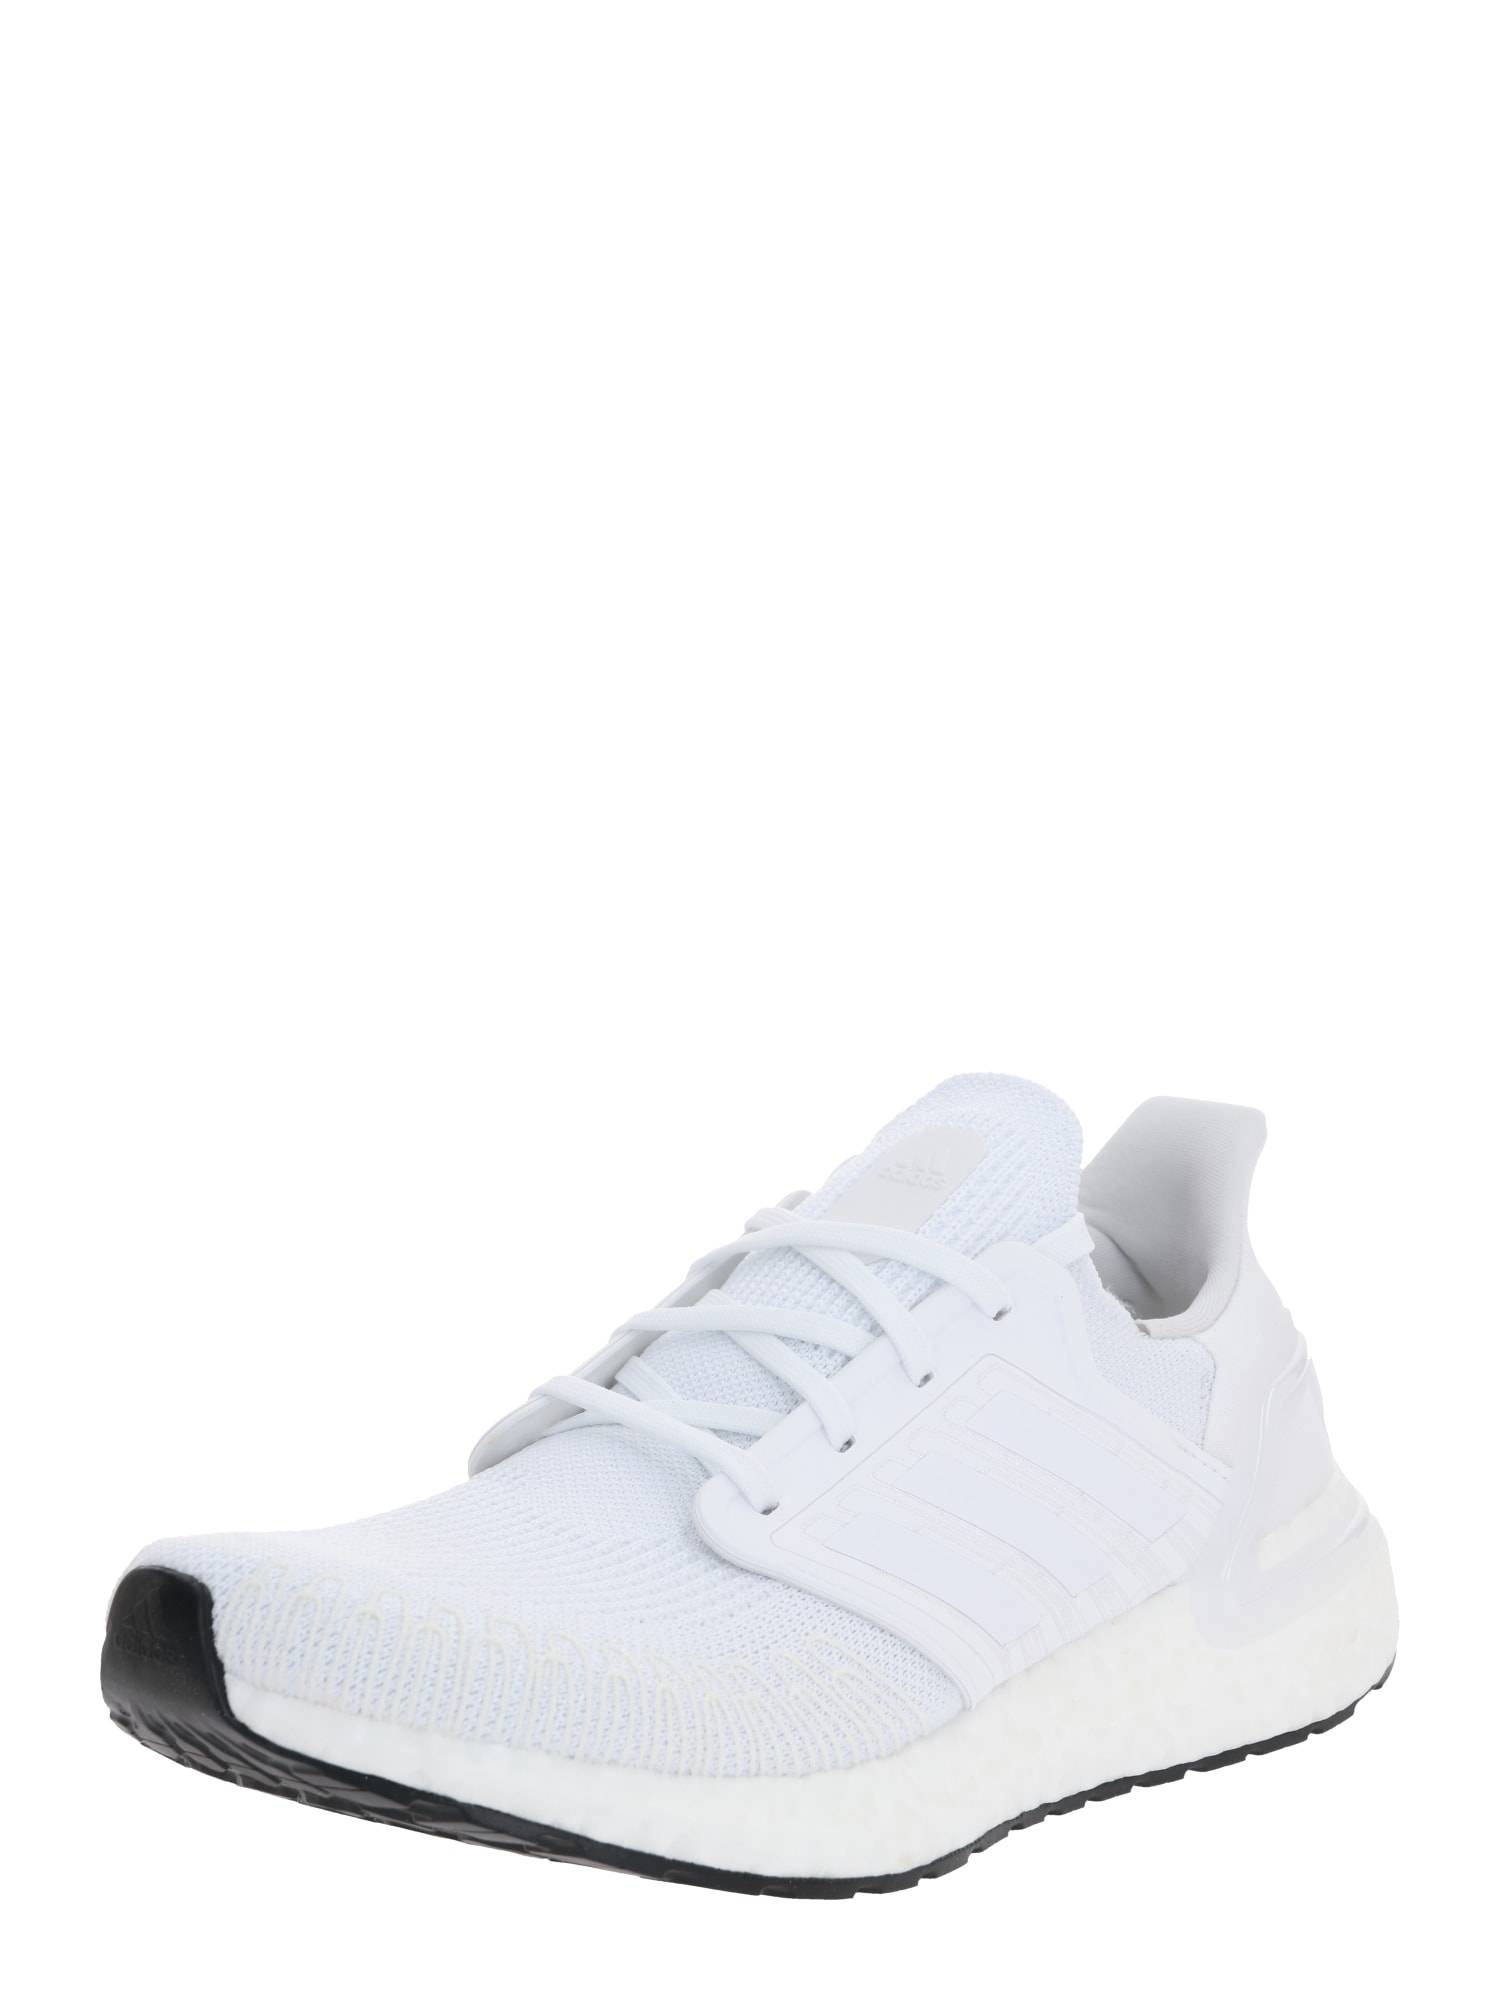 ADIDAS PERFORMANCE Chaussure de course 'Ultraboost 20'  - Blanc - Taille: 41-41.5 - male